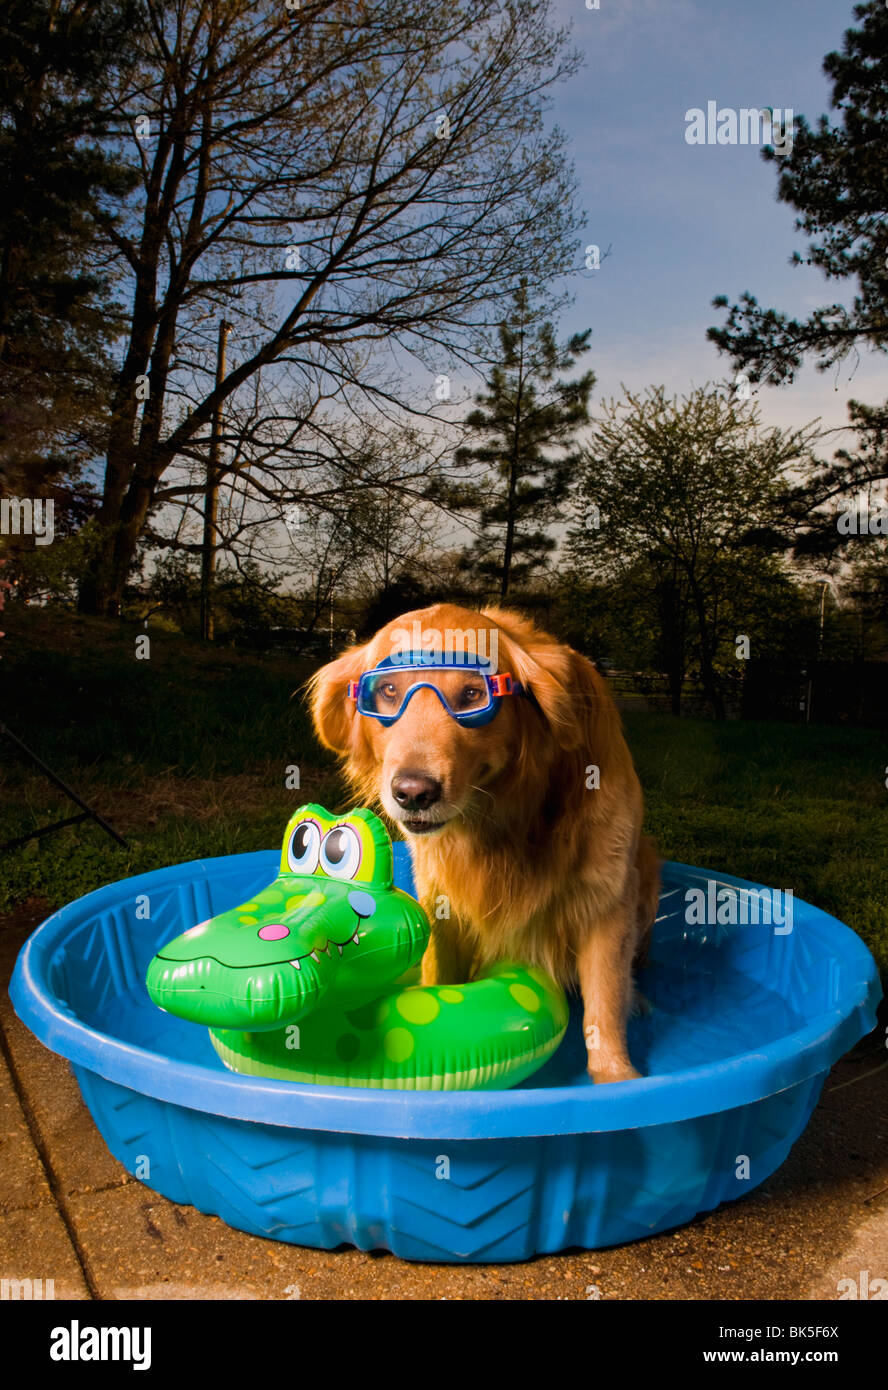 A golden retriever in a pool with a swim mask and a floating toy at sunset - Stock Image